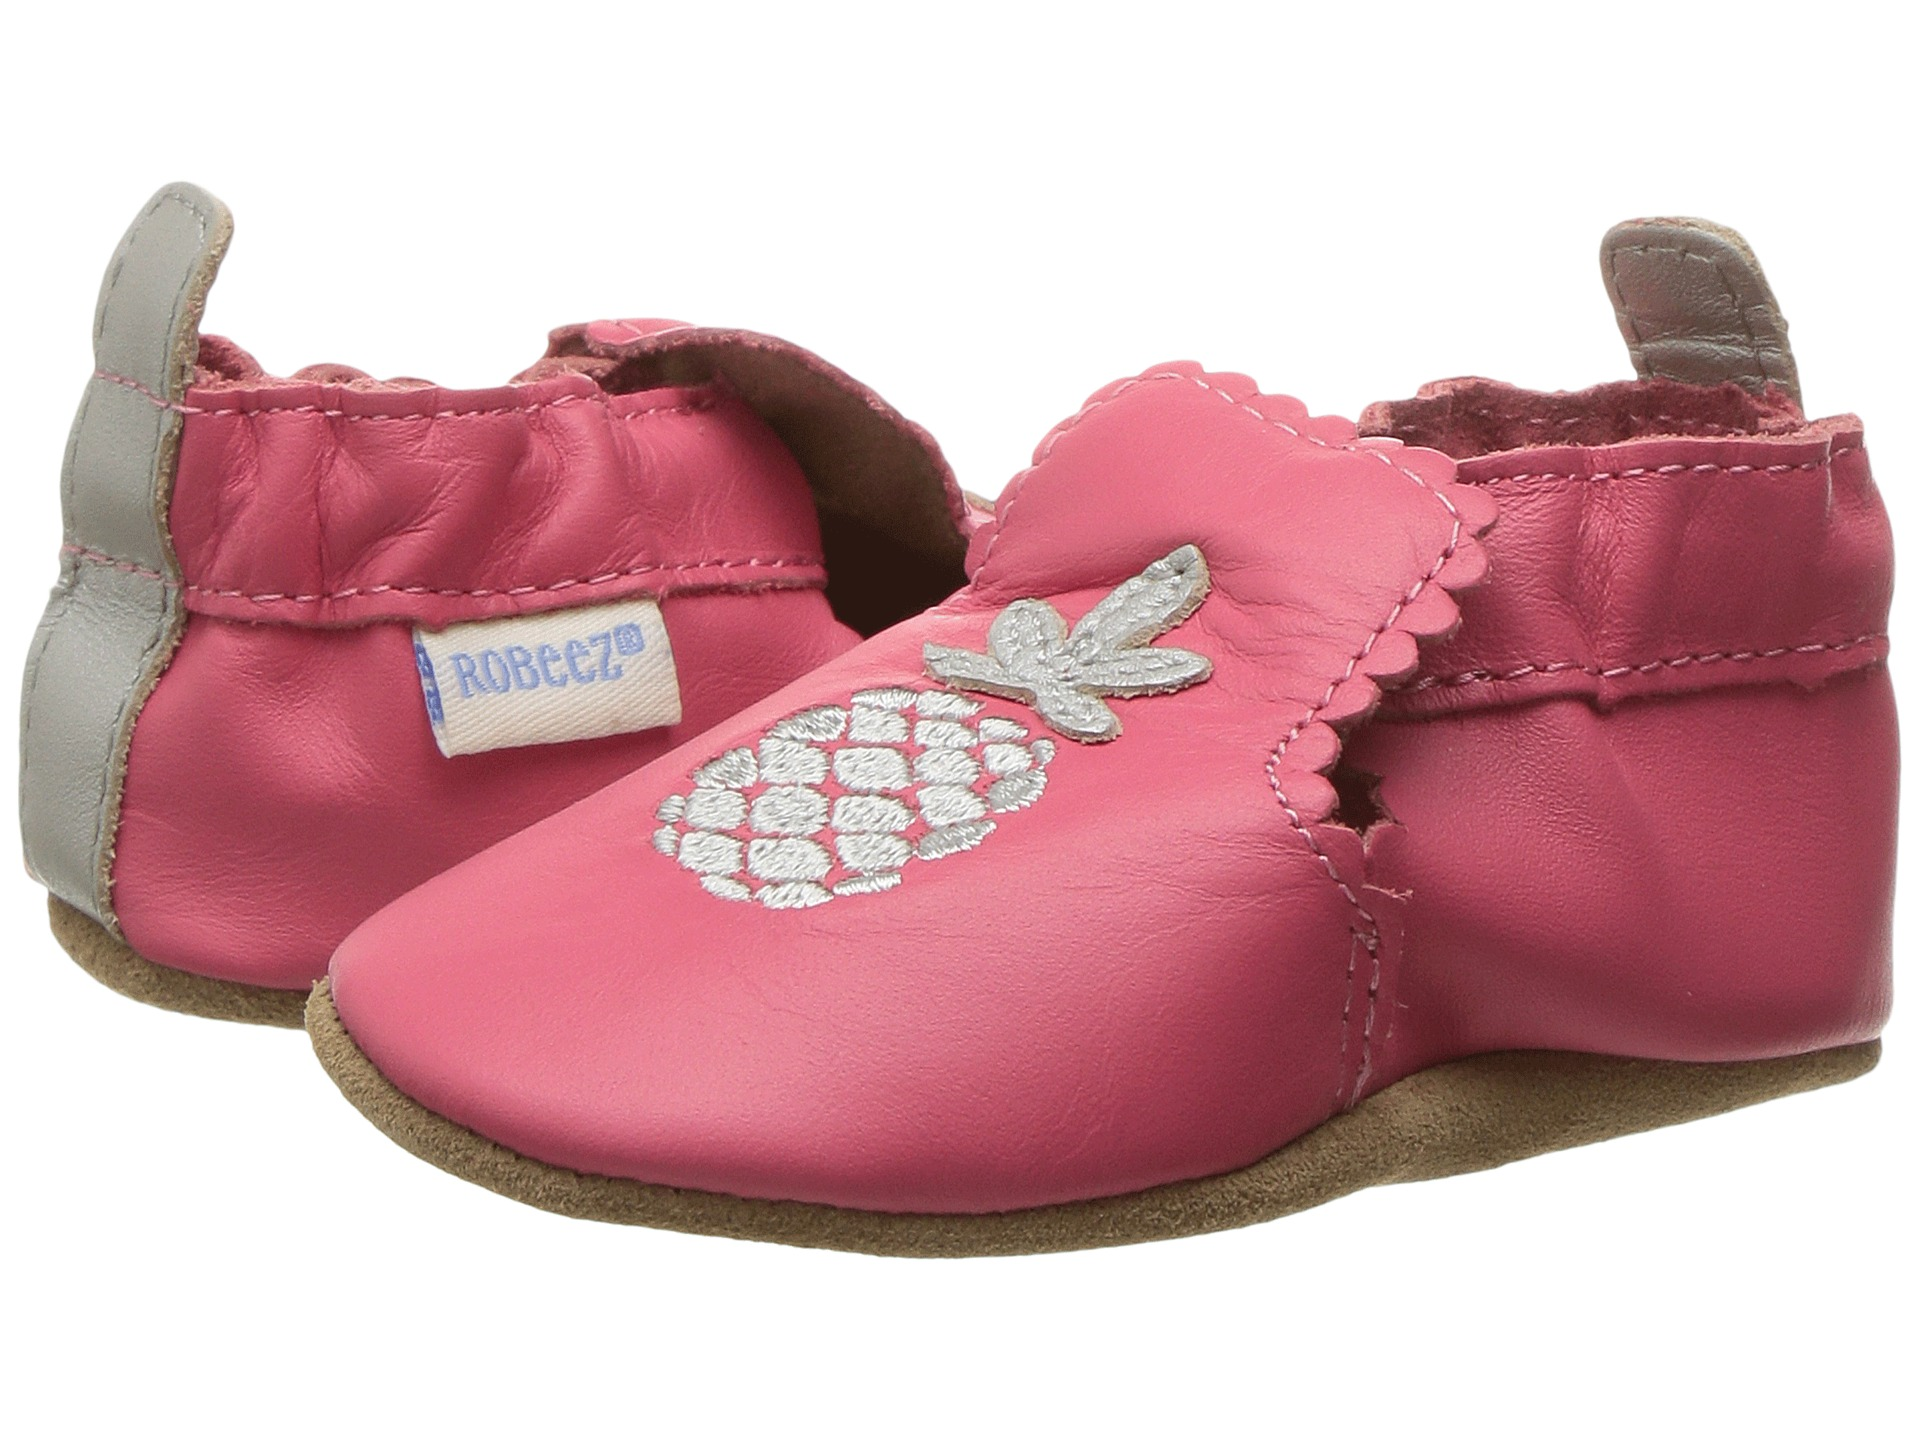 With durability, kids can go cruising all over with feet safely protected. Soft leather creates complete comfort, while a snug fit ensures shoes stay securely on. Start kids off on the right foot, with good balance for walking and adorable styling. Find Robeez shoes for little ones at Macy's today.